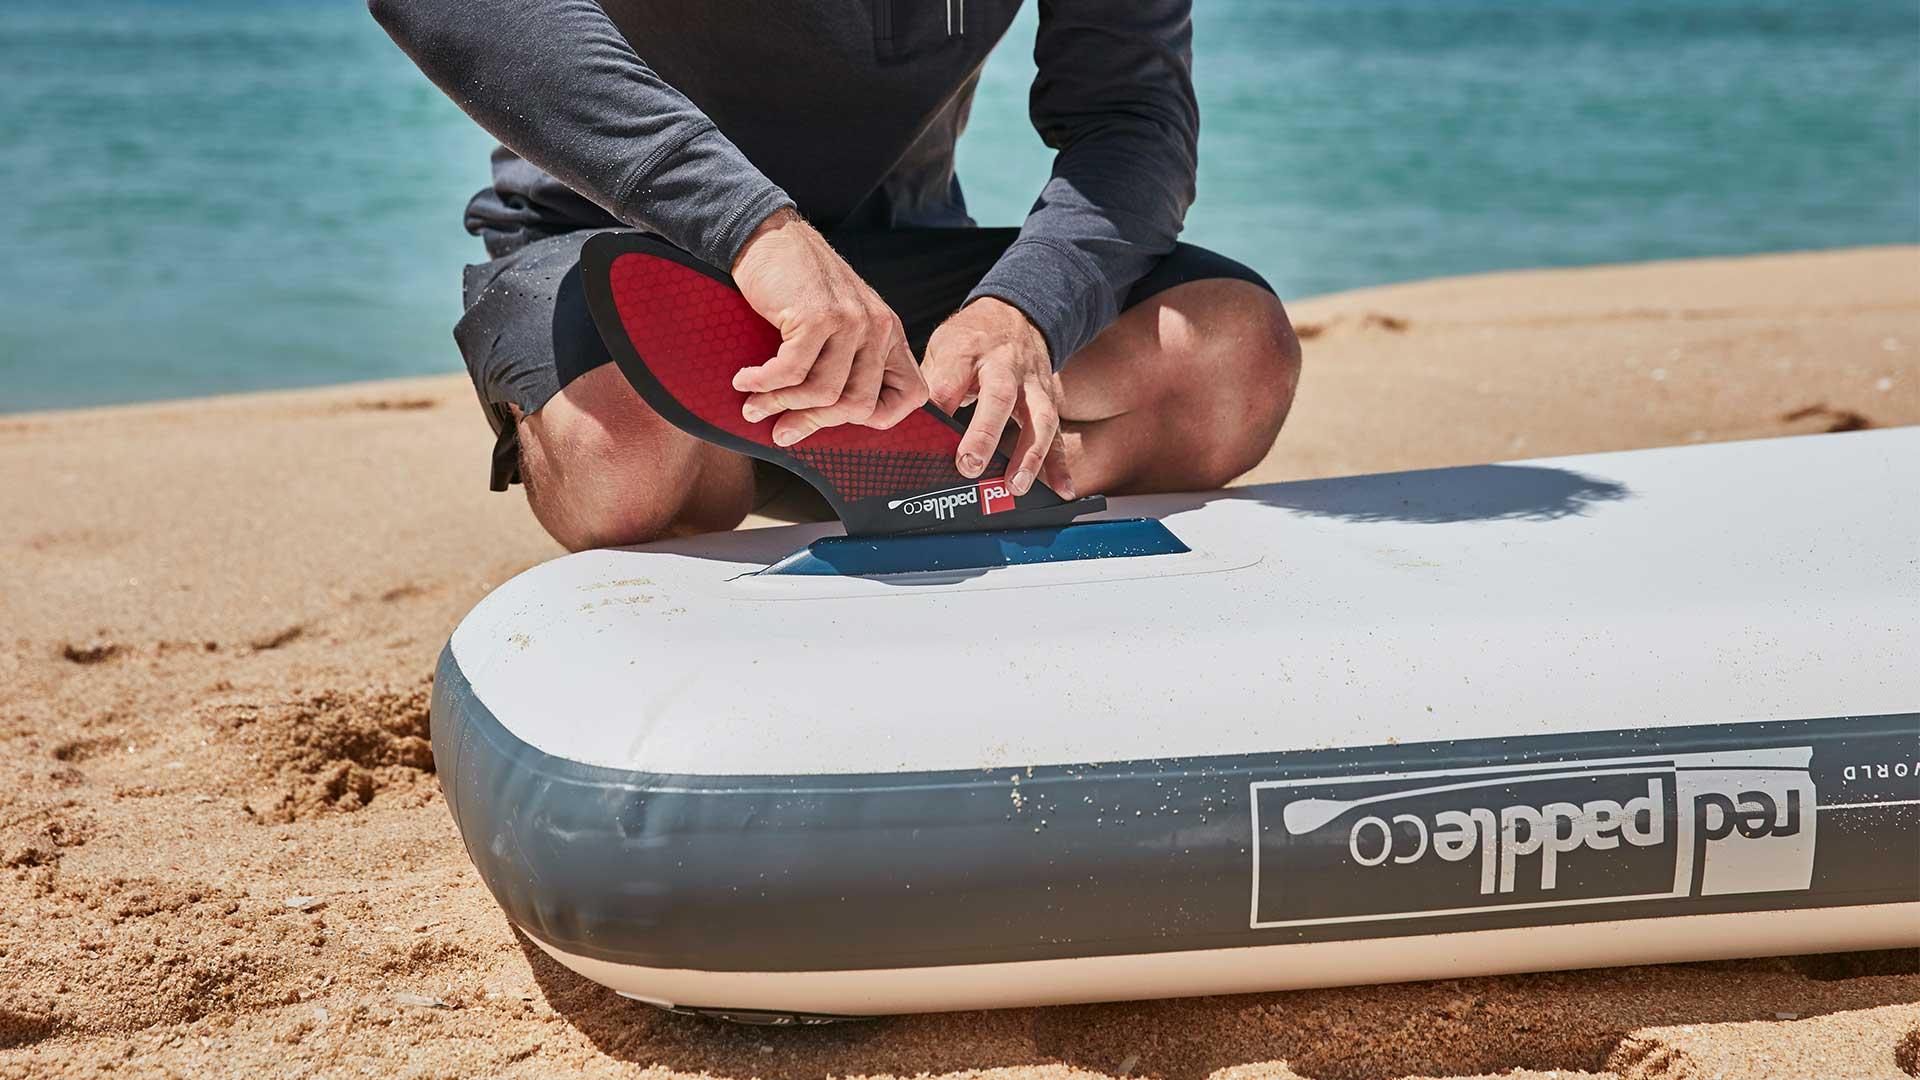 redpaddleco-220-dragon-inflatable-paddle-board-desktop-gallery-fins